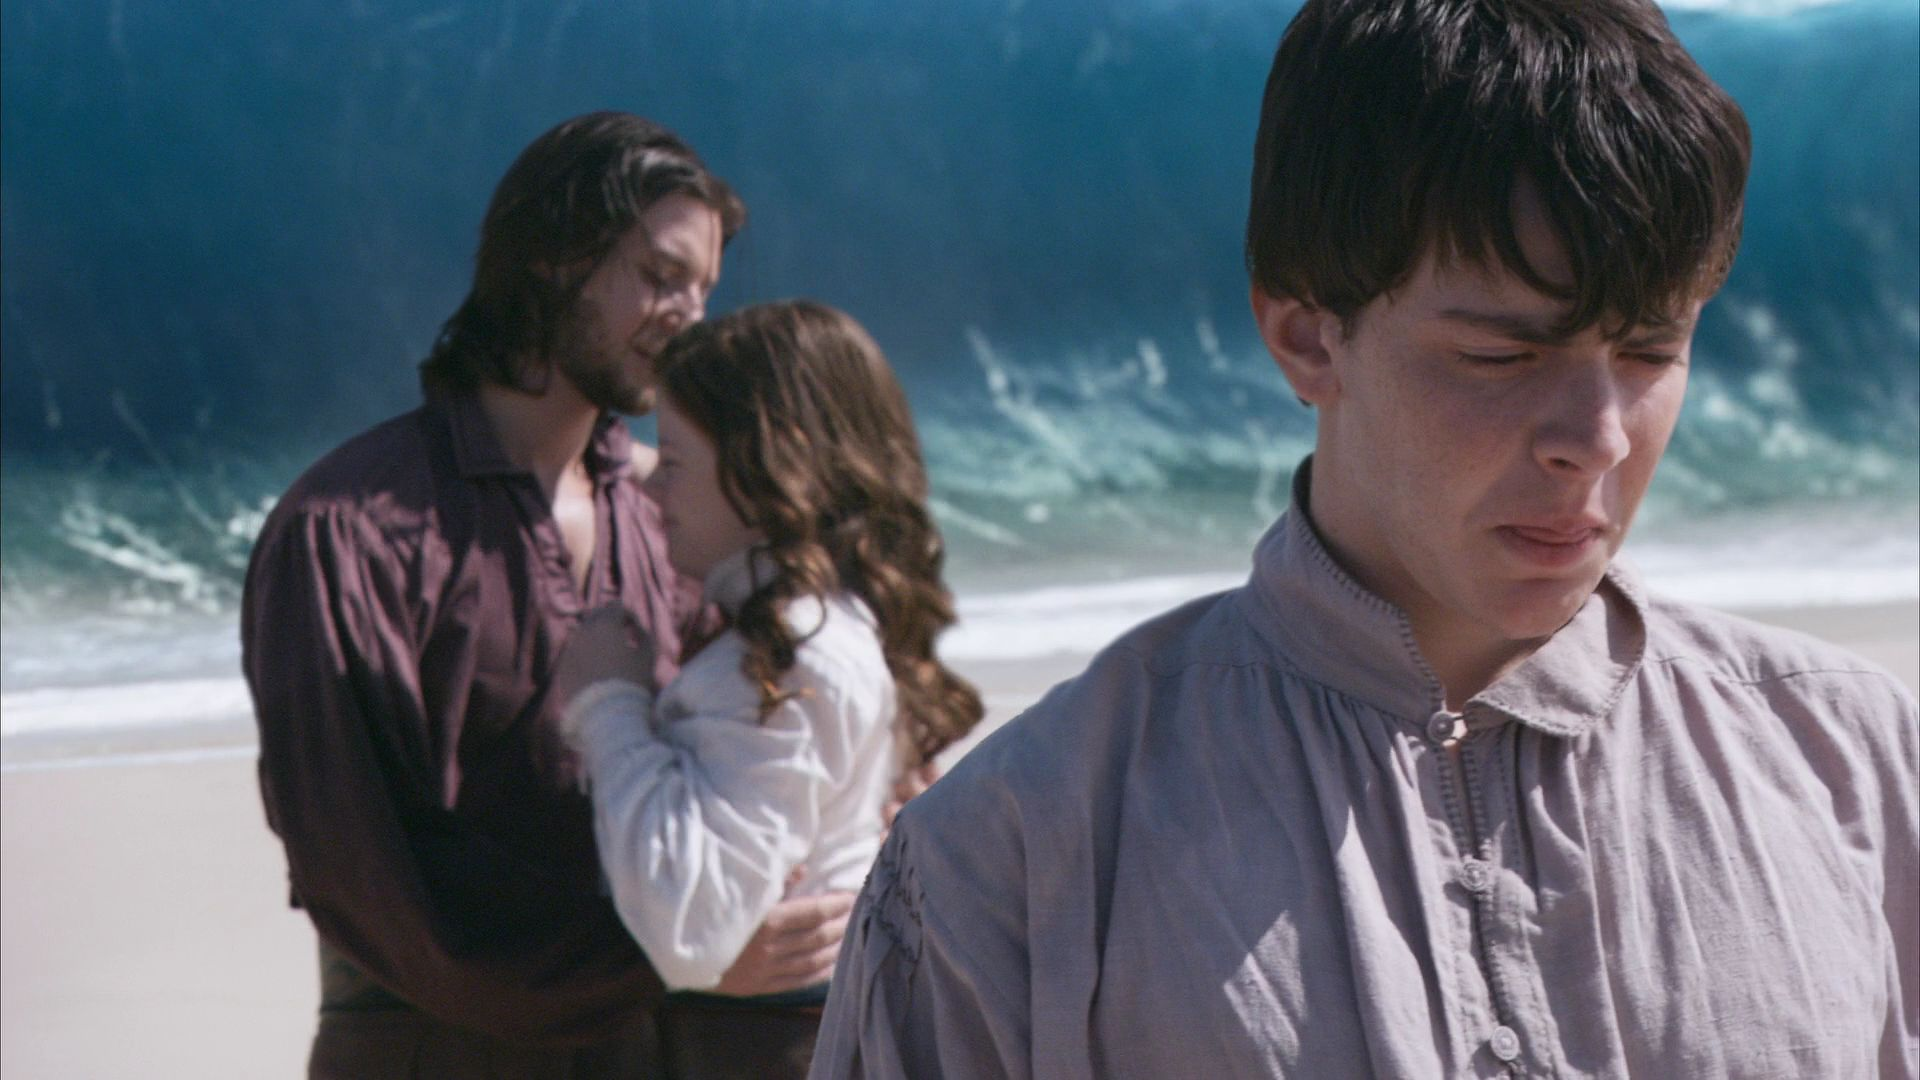 1920x1080 - The Chronicles of Narnia: The Voyage of the Dawn Treader Wallpapers 36